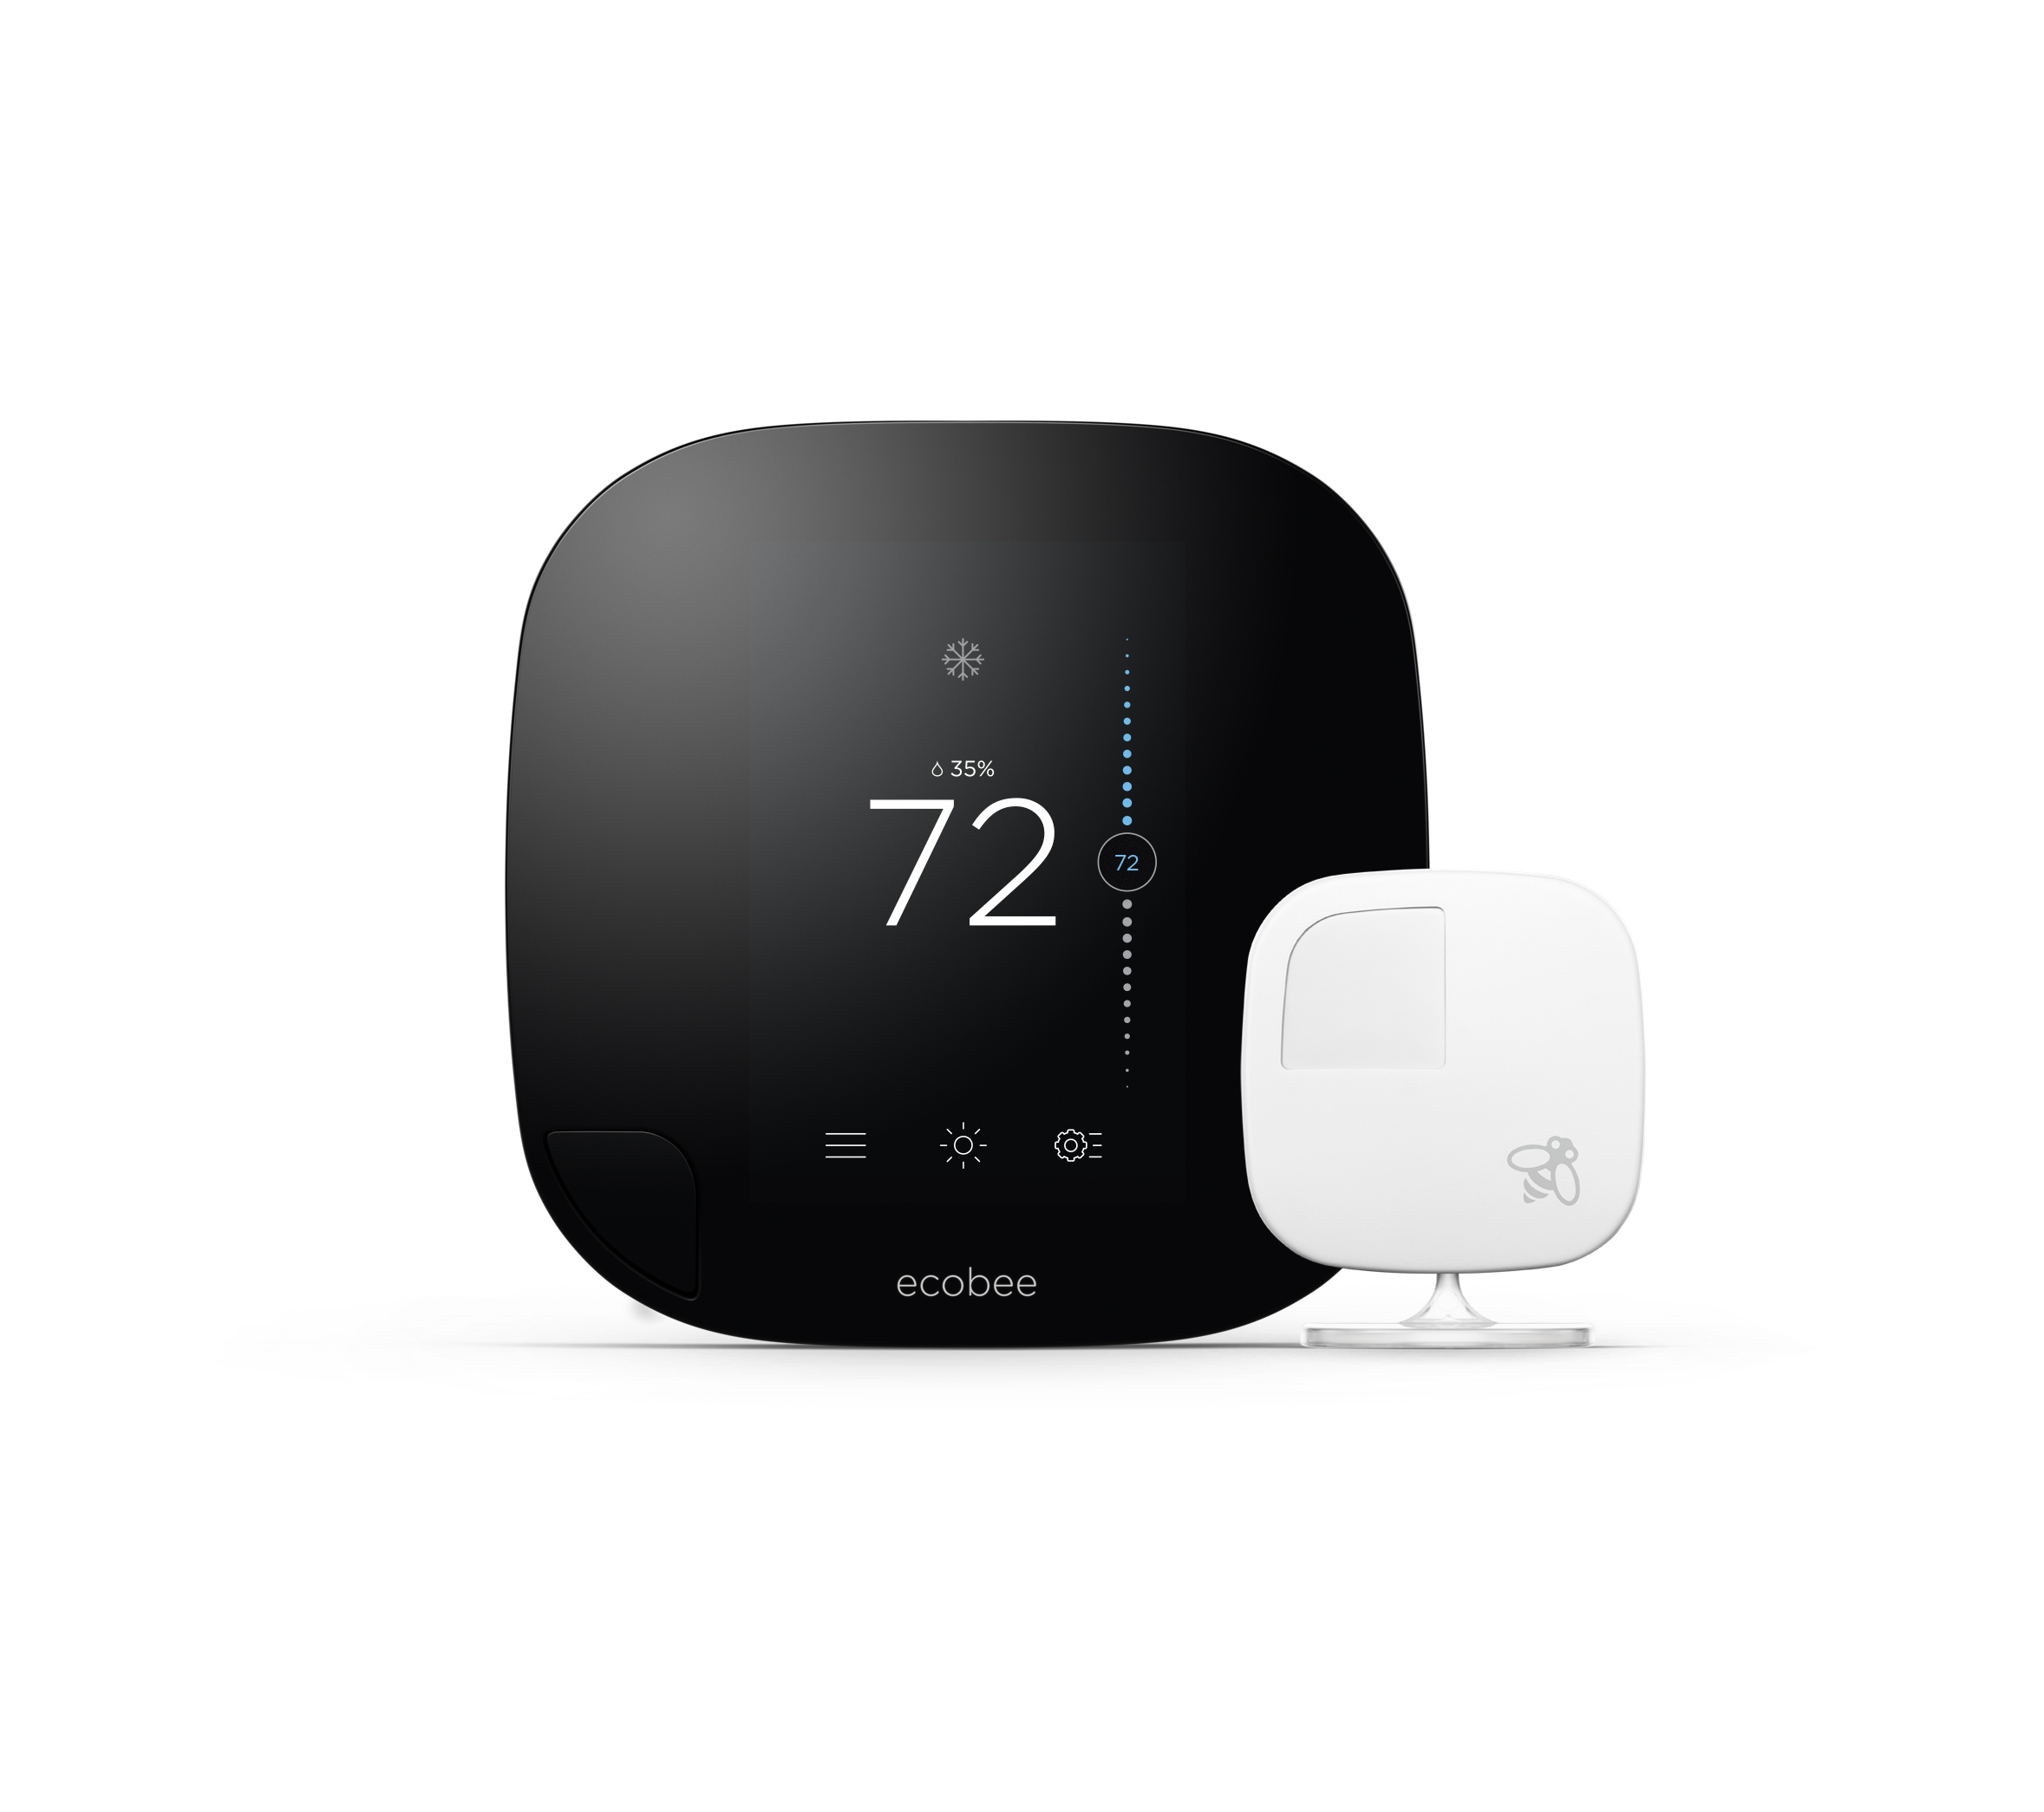 ecobee ems with Press on Home Automation What Is It And Do We Need It as well Dept 1NT as well Ecobee Thermostat Eb Ems 02 Wi Fi Enabled Touchscreen  mercial also Press as well Top 10 Energy Efficiency Smartphone Apps.